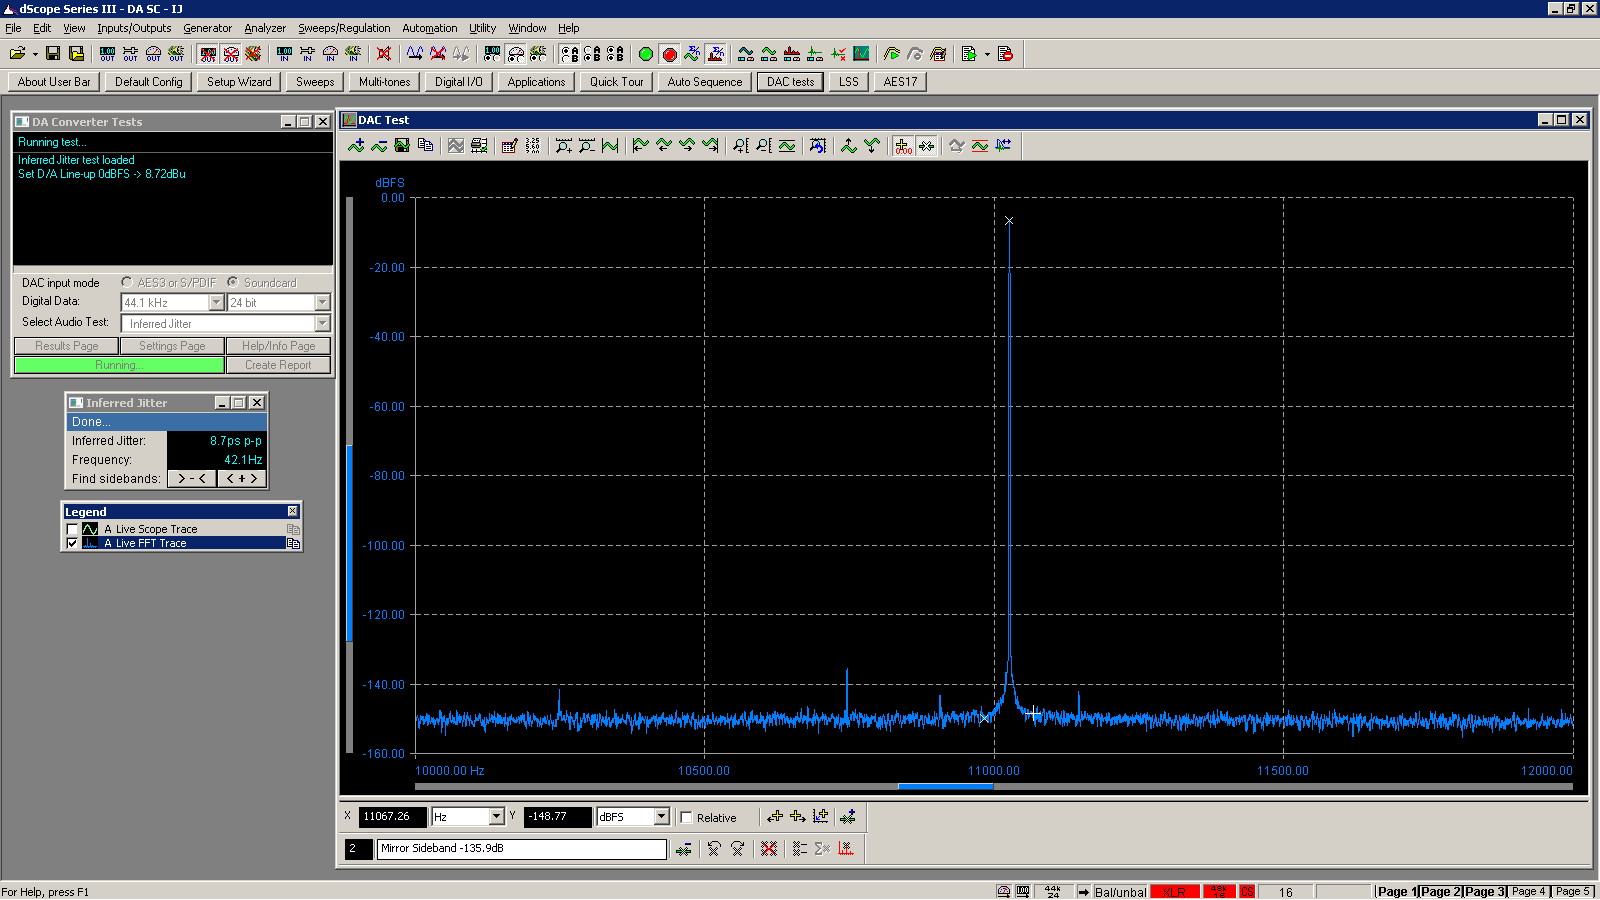 20151120 Bifrost MB SE inferred jitter - 2KHz BW - USB.PNG